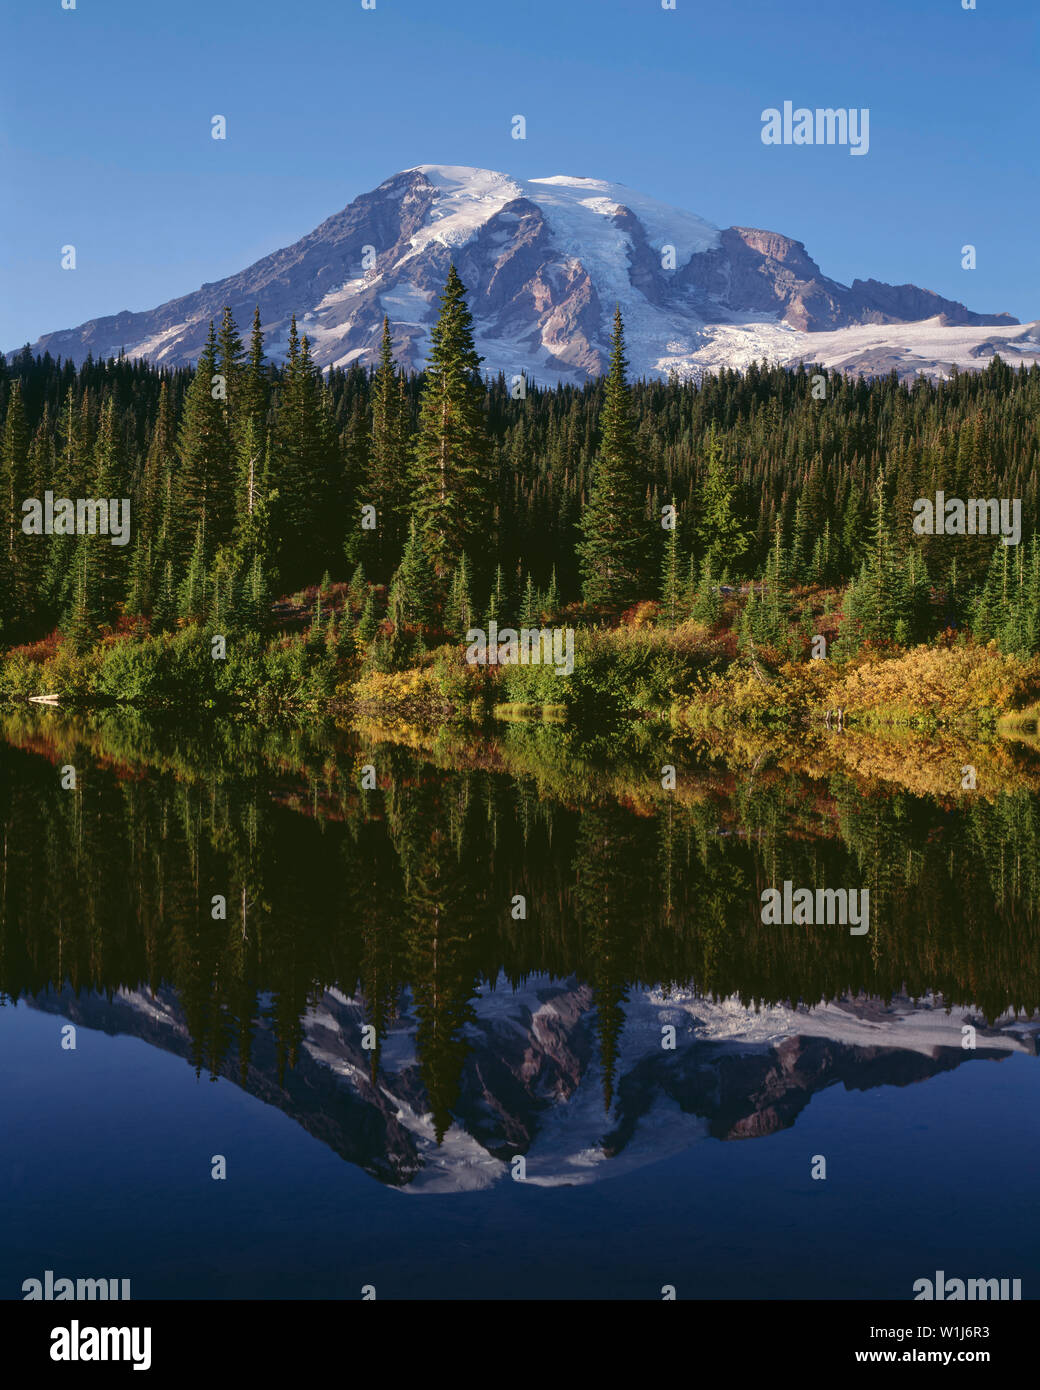 USA, Washington, Mt. Rainier National Park, Mt. Rainier, autumn colored huckleberry and evergreen forest are mirrored in Reflection Lake in evening. - Stock Image